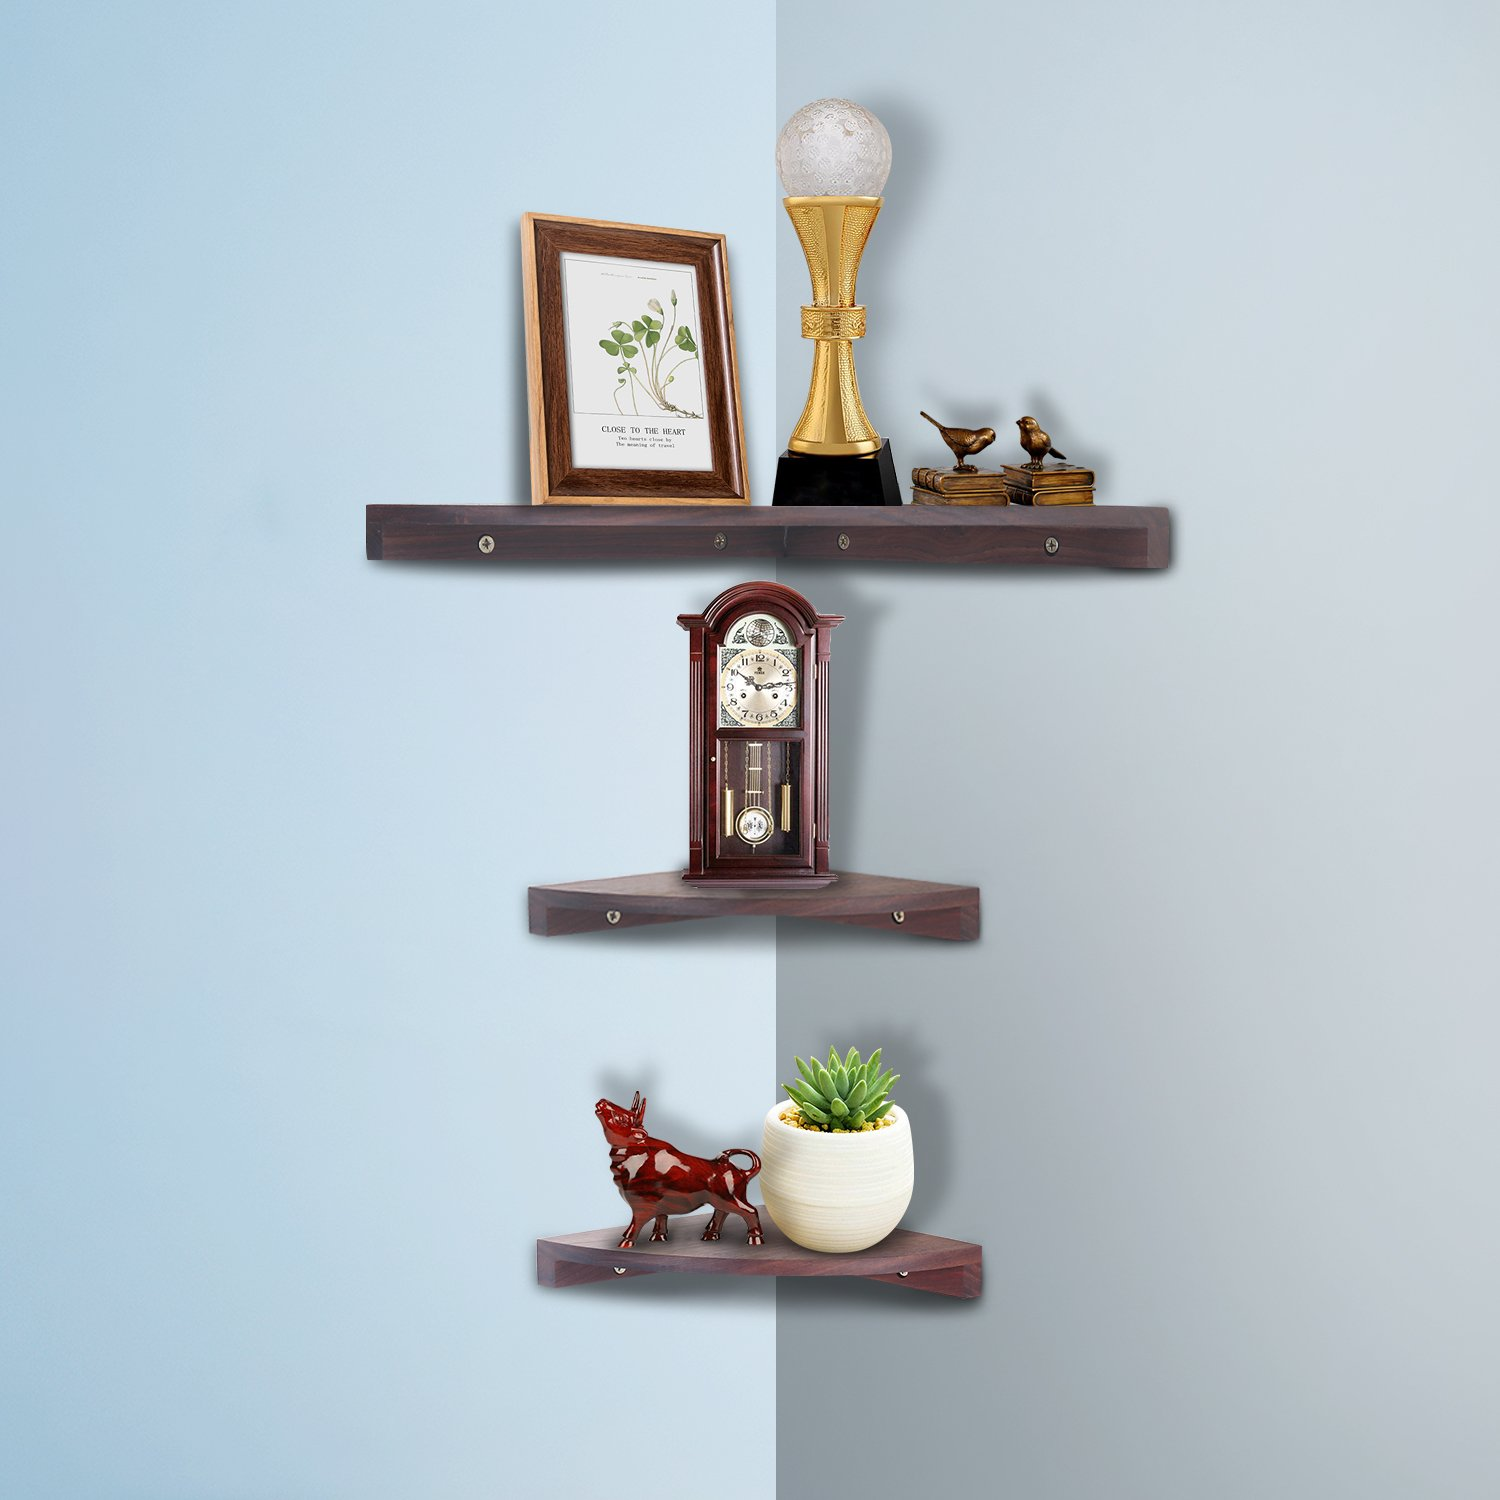 yankario solid walnut wood corner floating shelves wall mounted shelf set natrual home kitchen shoe ideas tures ikea invisible pre built mantels computer desks video shelving